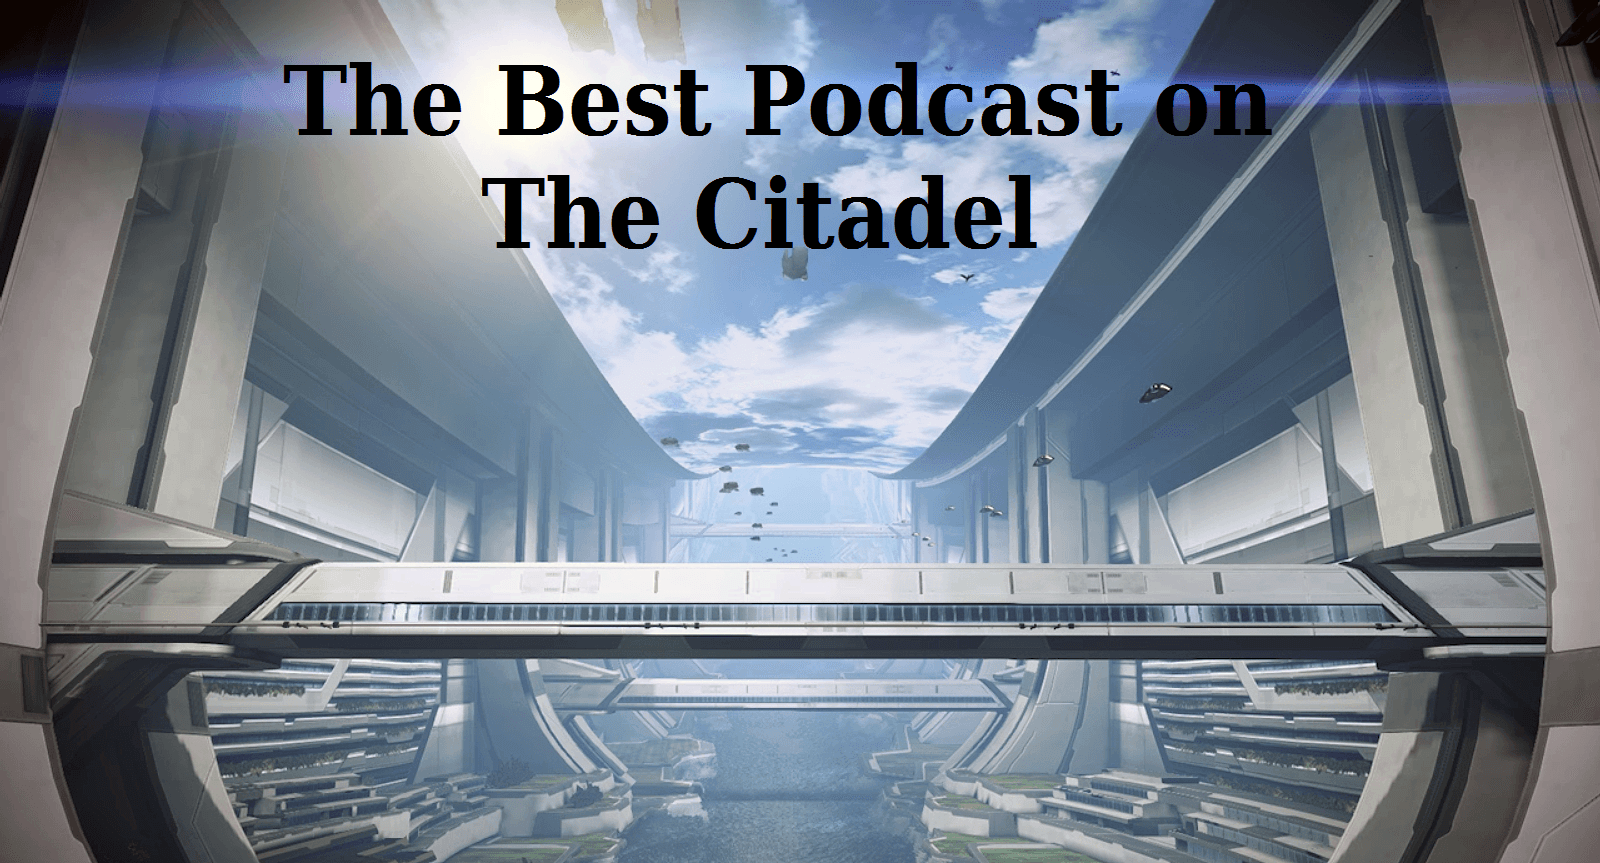 The Best Podcast on the Citadel, Ep. 39